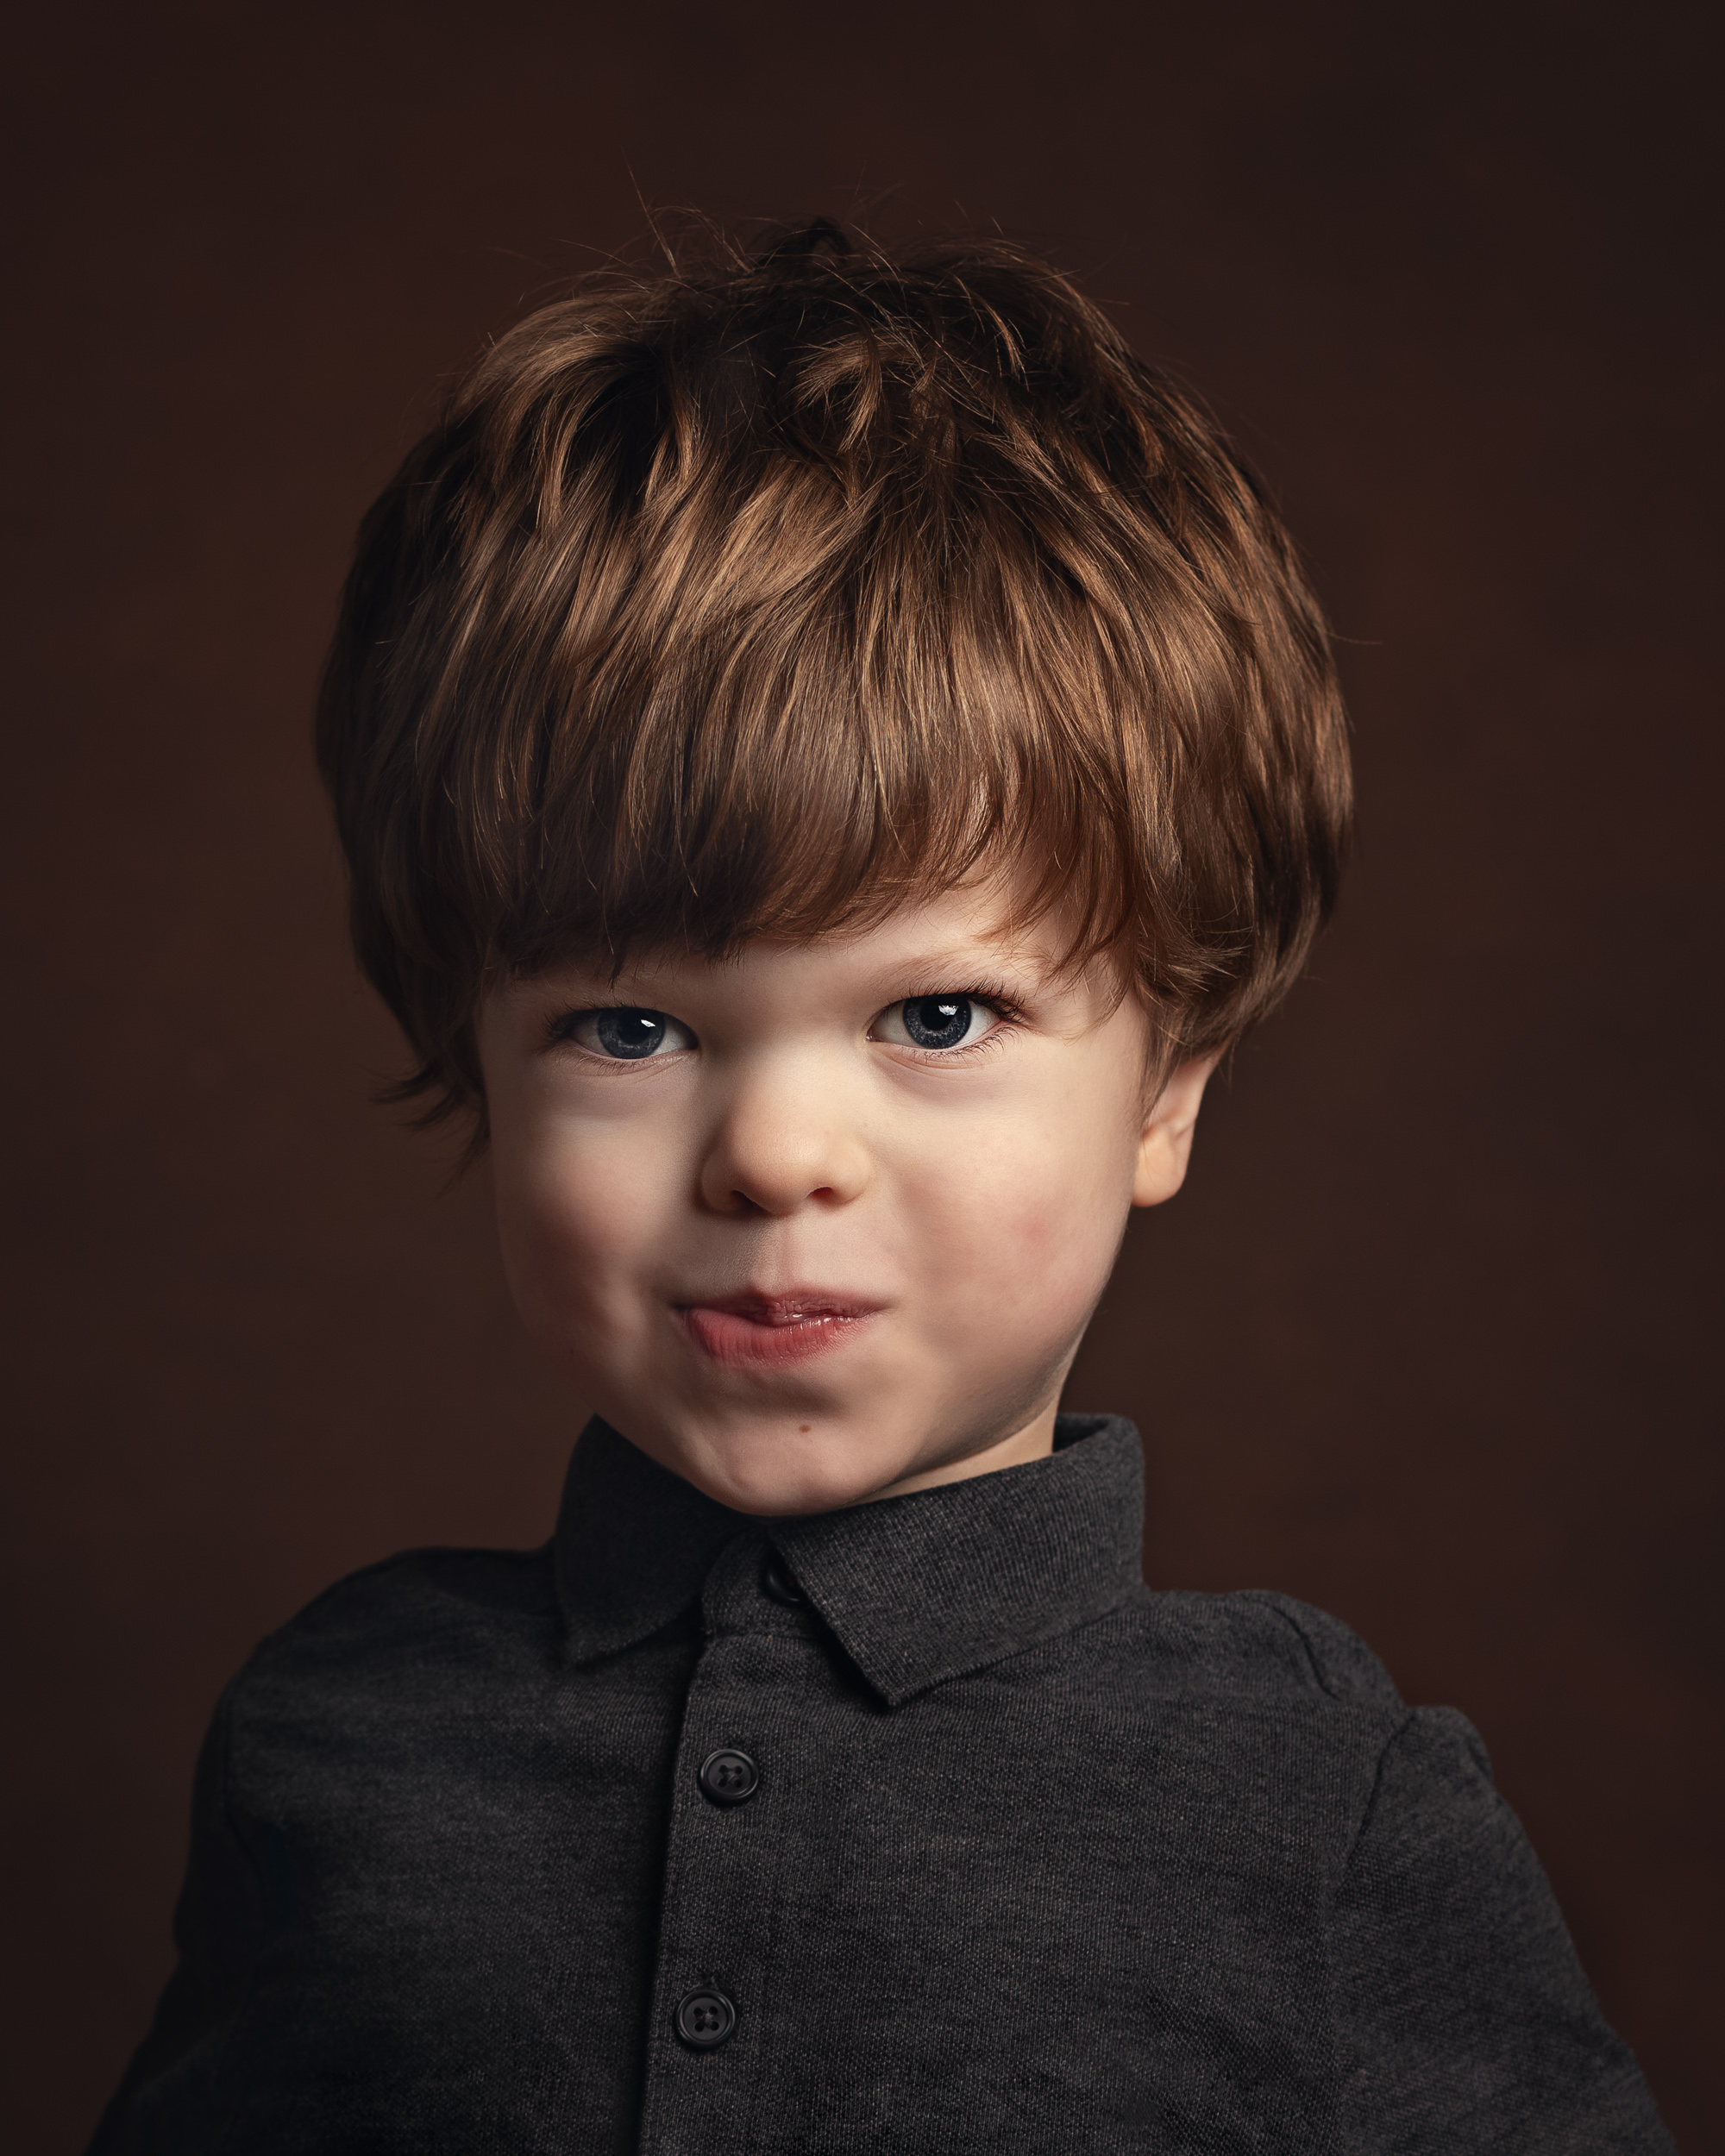 Rufus, who has achondroplasia, with a cheeky face on during his portrait session in Cheshire